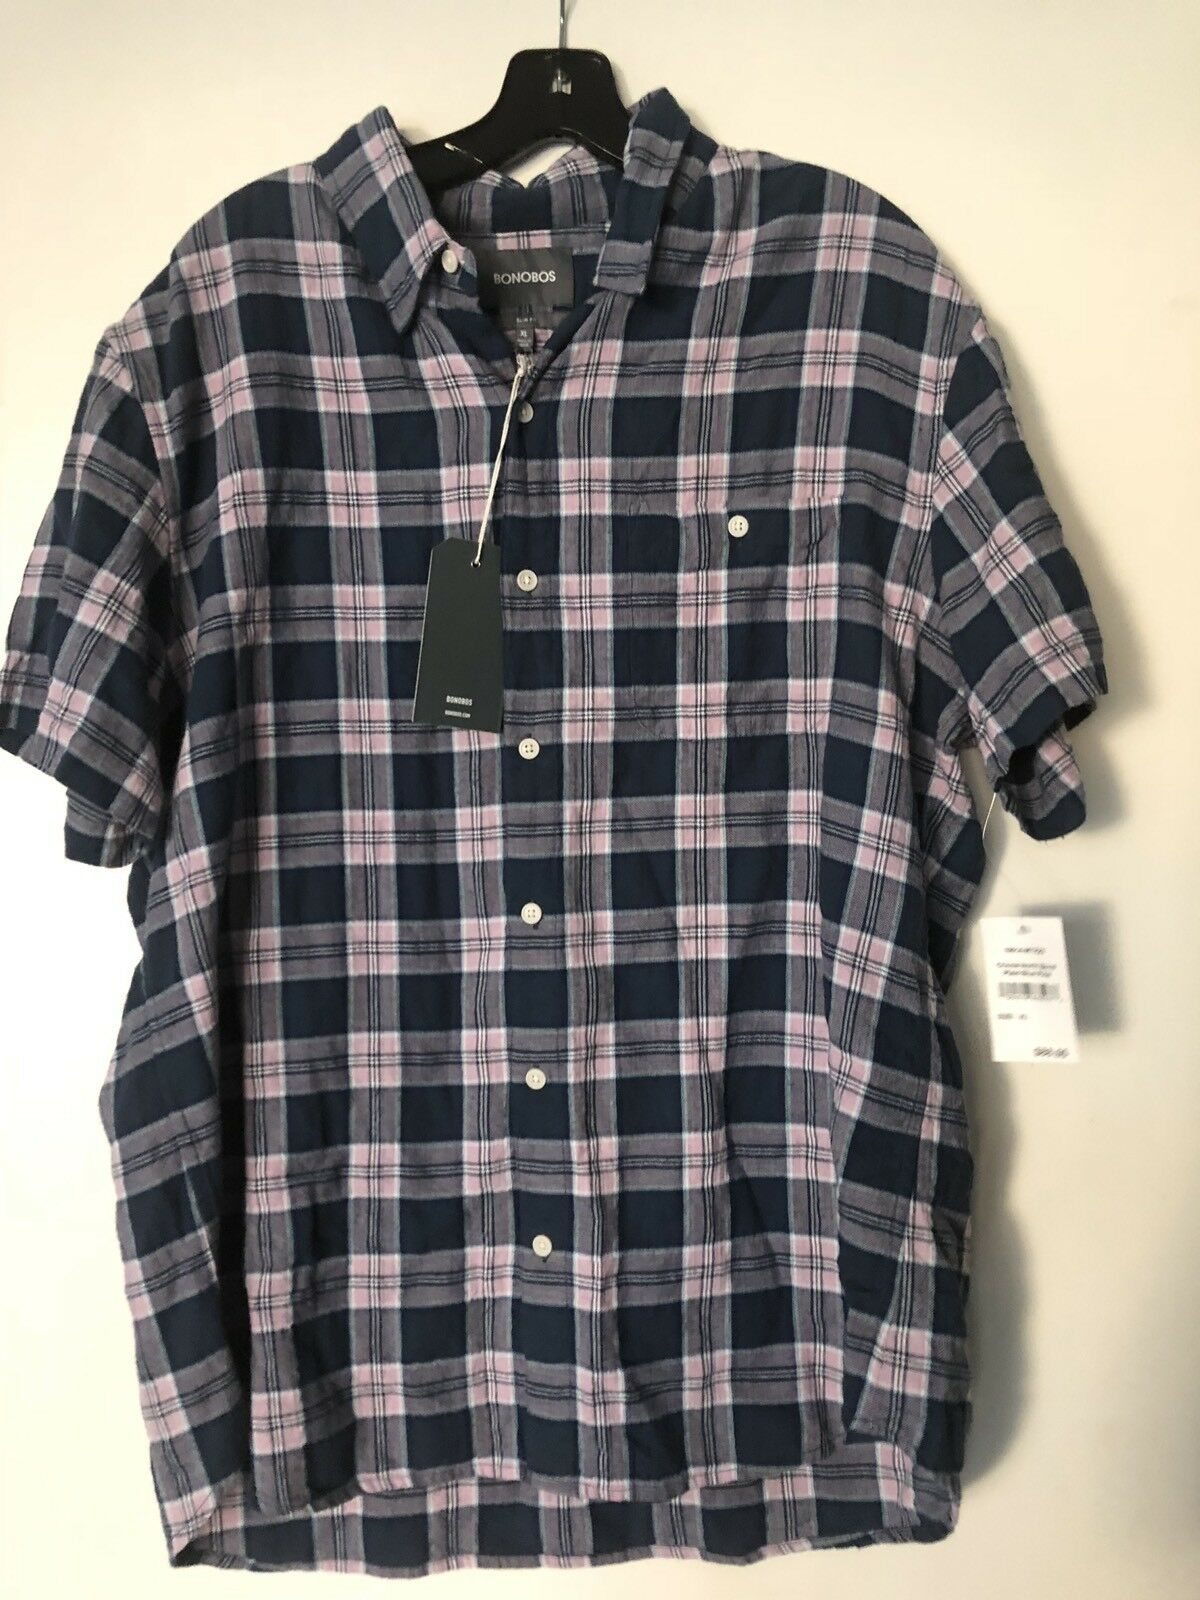 BONOBOS  Men's XL Crincle Crinkle North Bend Plaid Shirt bluee pine NWT